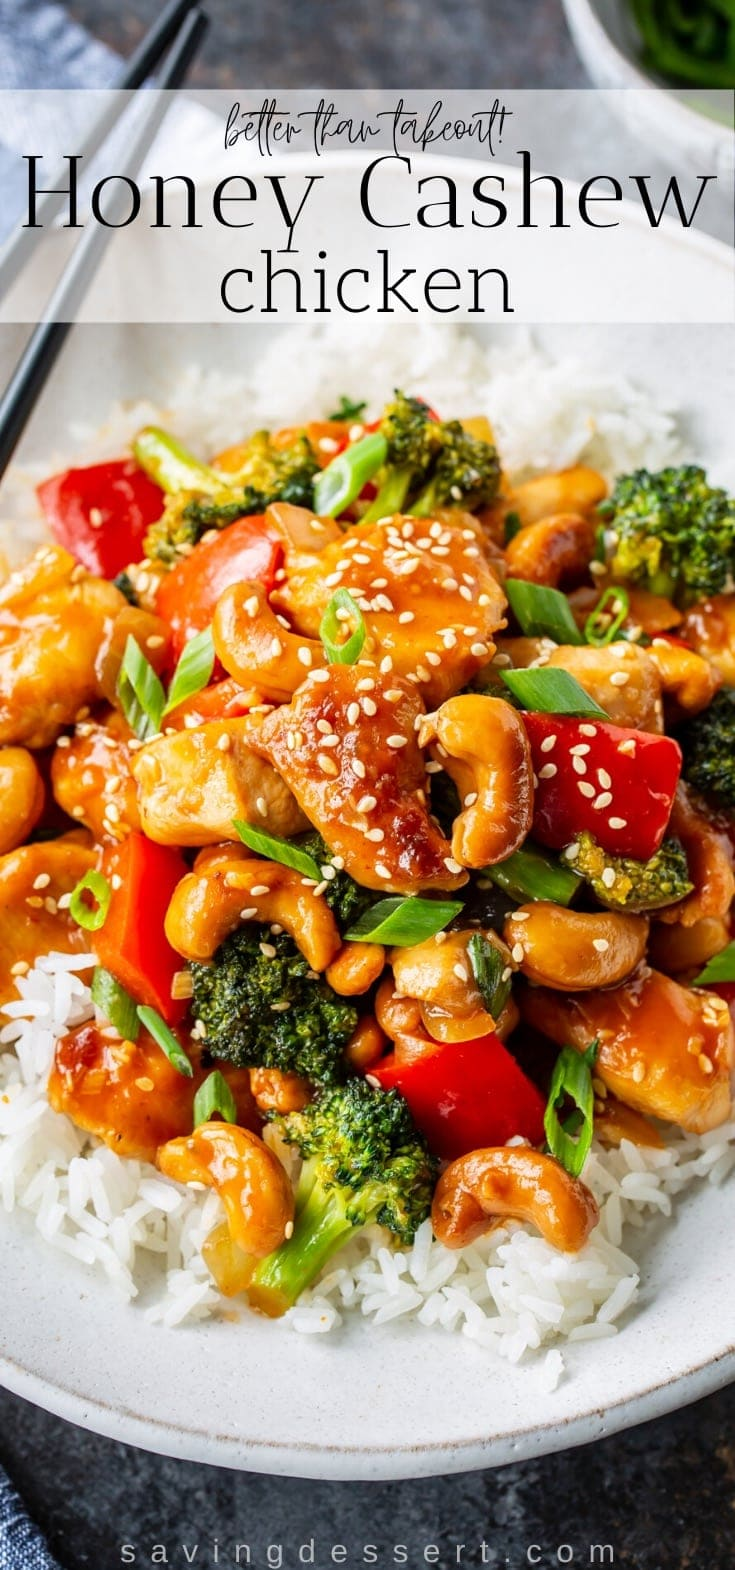 A bowl of rice topped with honey cashew chicken with red peppers and broccoli